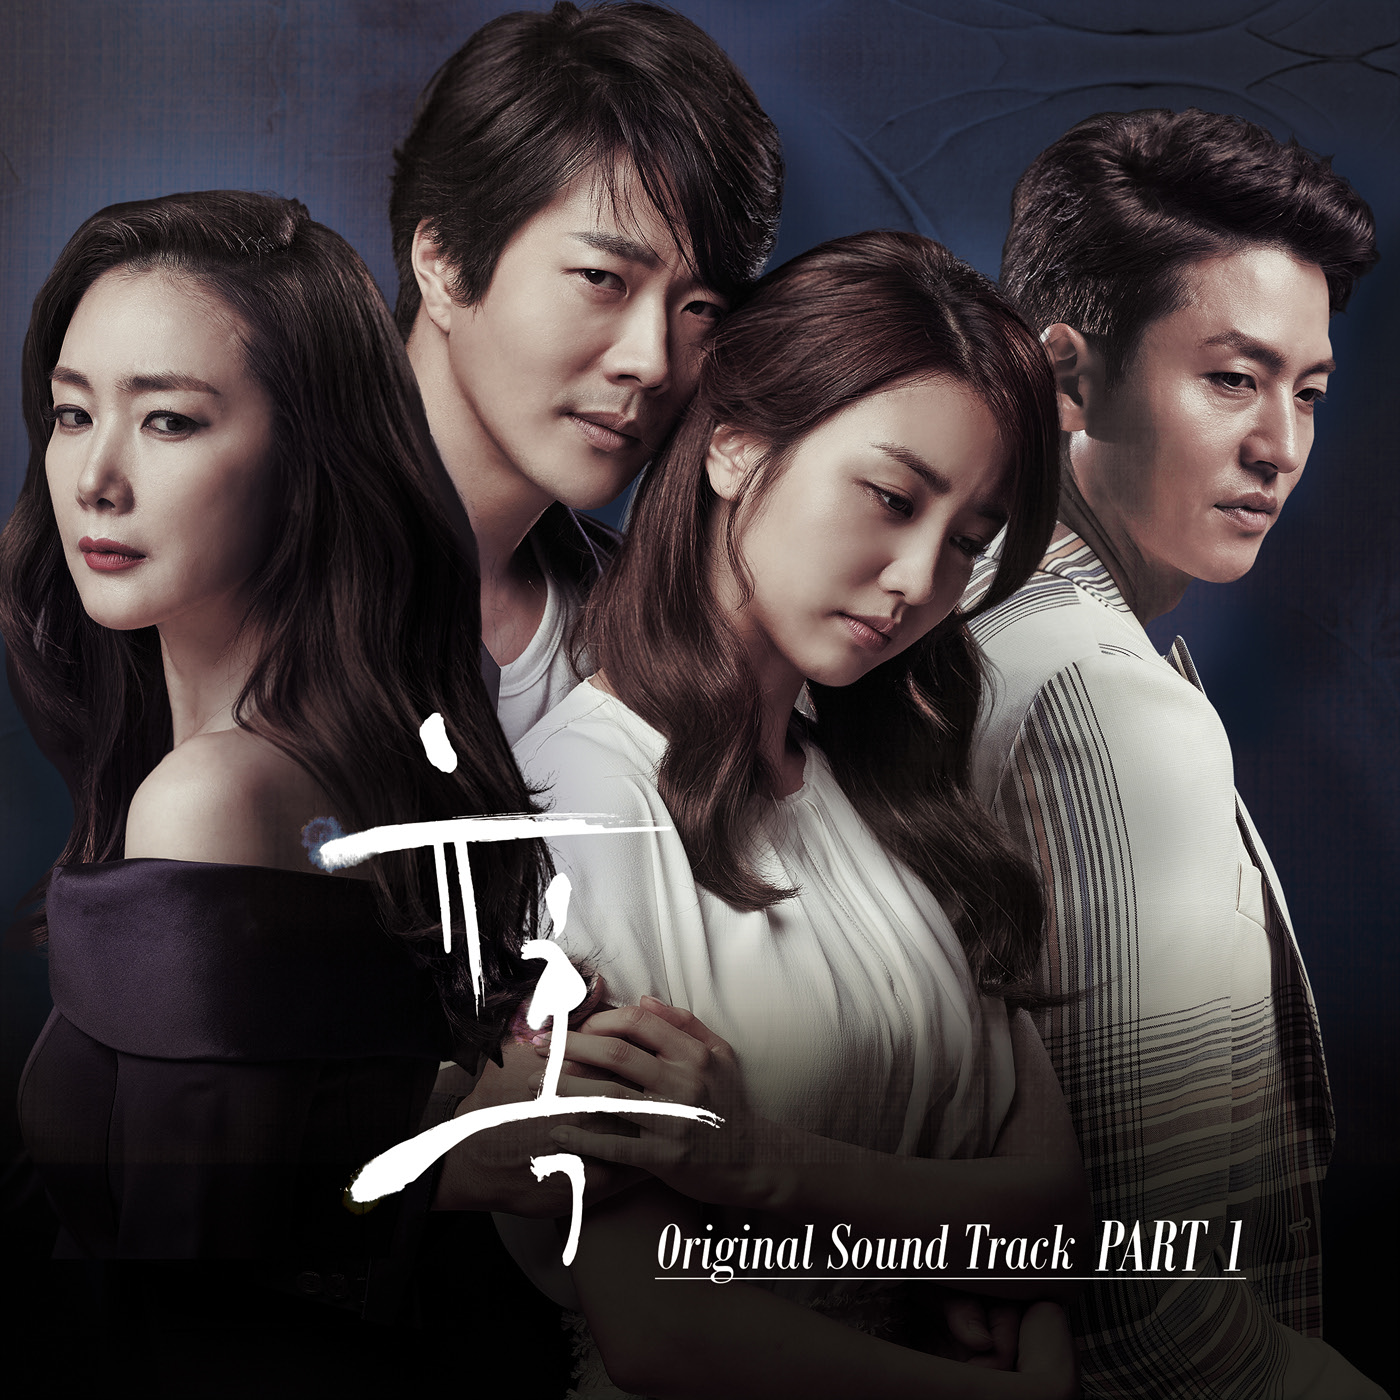 park jung hyun, lena park, temptation ost, download, mp3